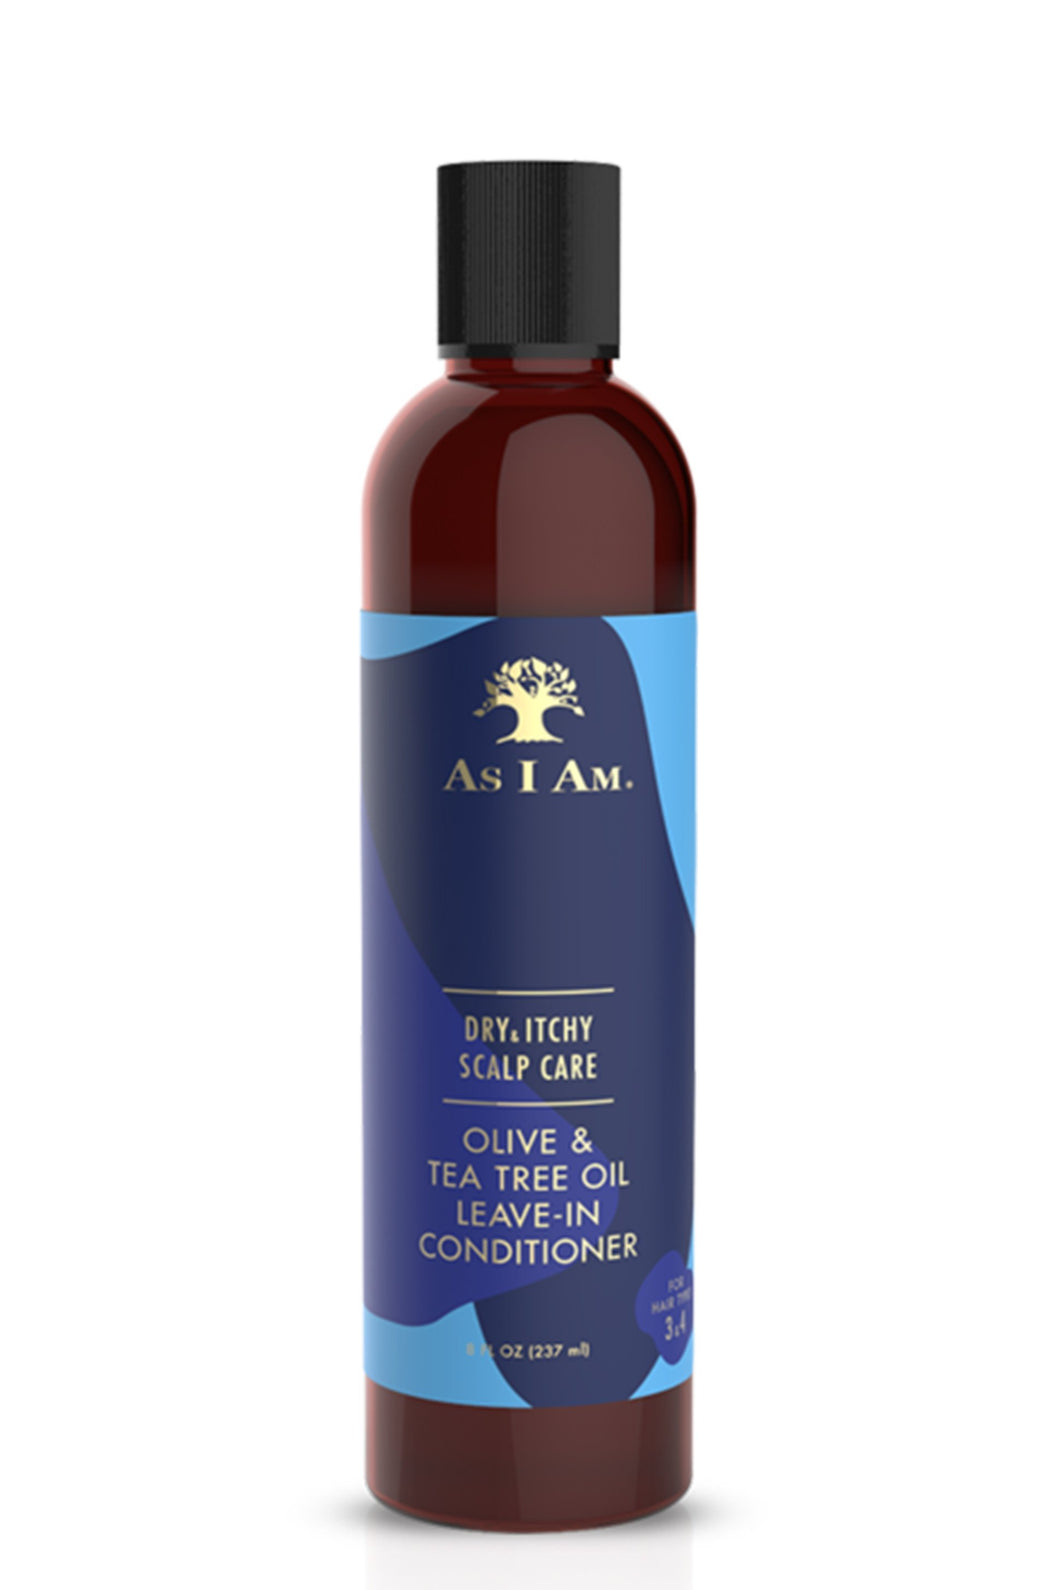 AS I AM Dry and Itchy Scalp Care Olive and Tea Tree Oil Leave in Conditioner (237ml)